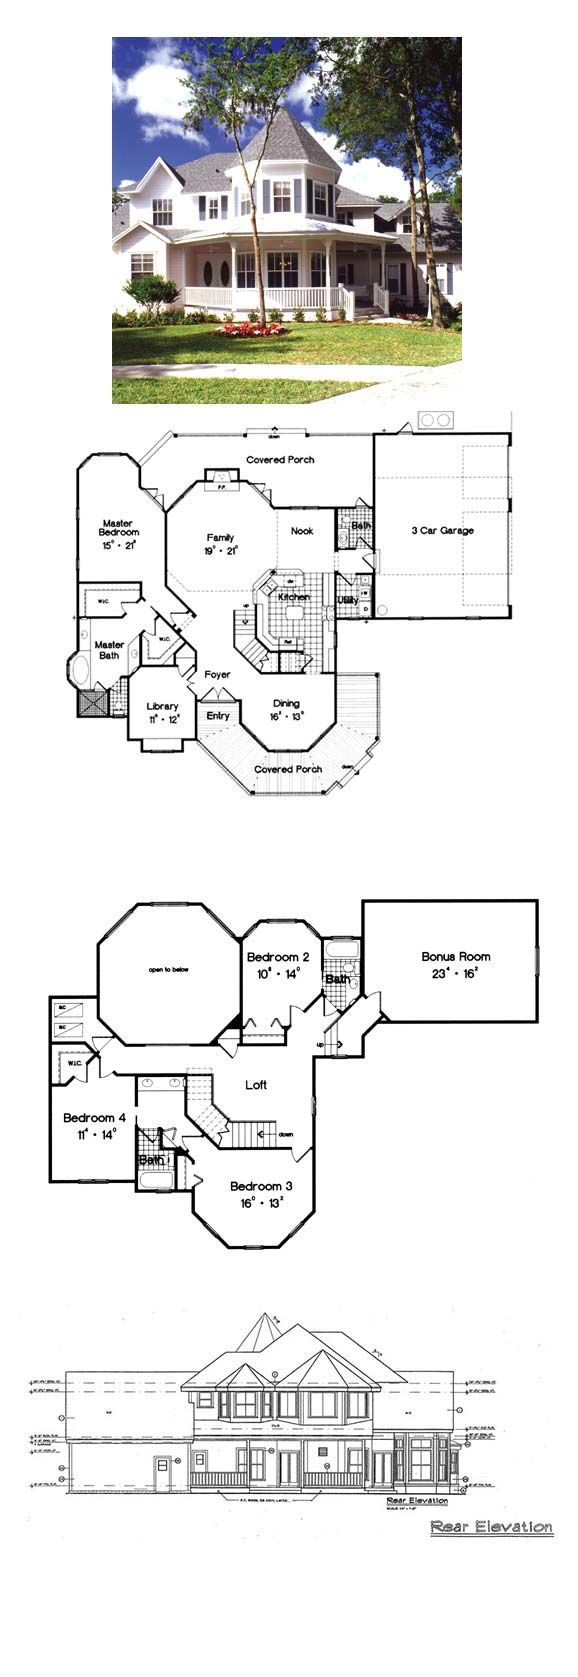 Victorian Style Cool House Plan Id Chp 16546 Total Living Area 3139 Sq Ft 4 Bedrooms And 3 5 Victorian House Plans Vintage House Plans Best House Plans